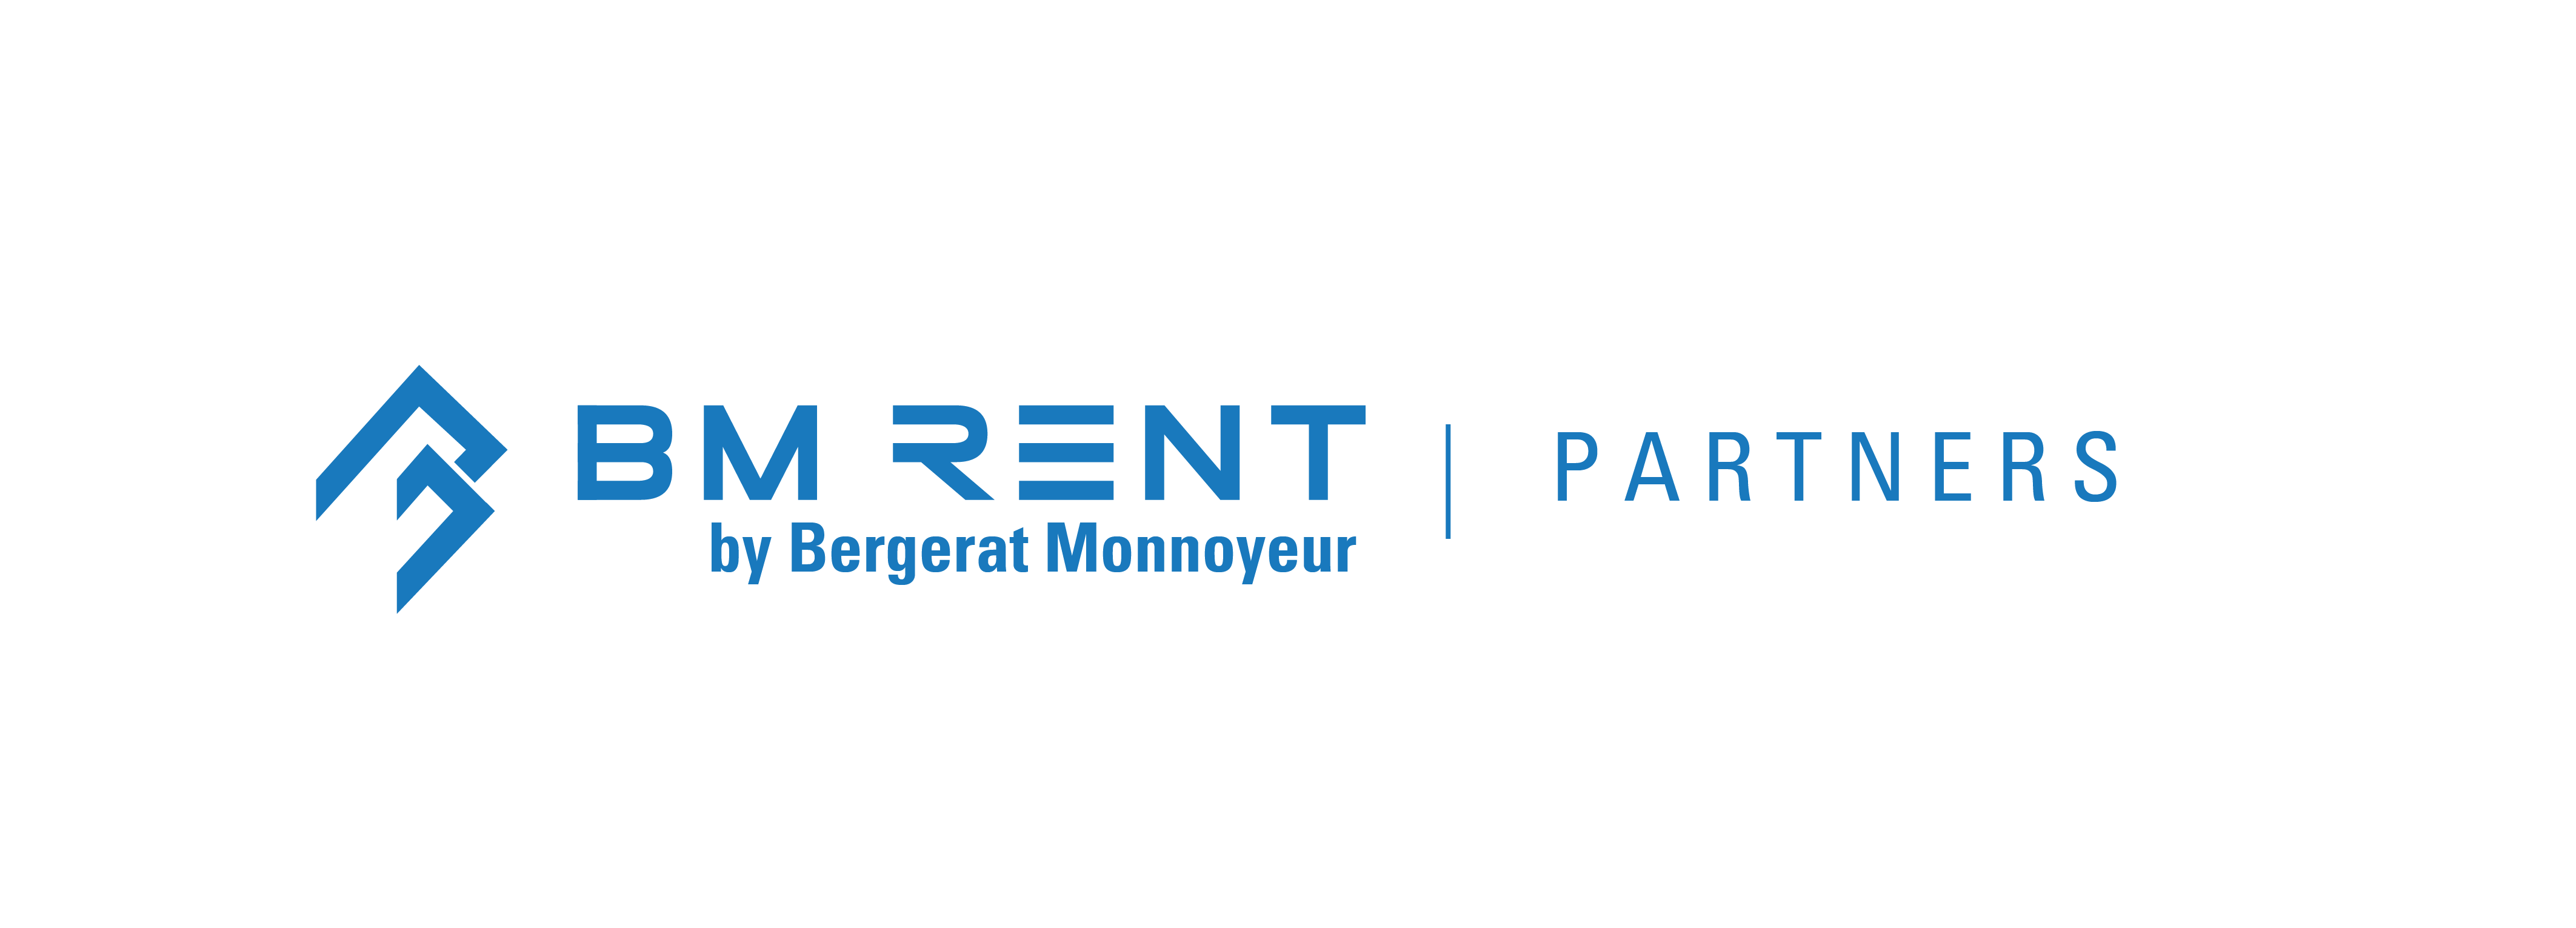 logo_bm_rent_partners_white4x.png